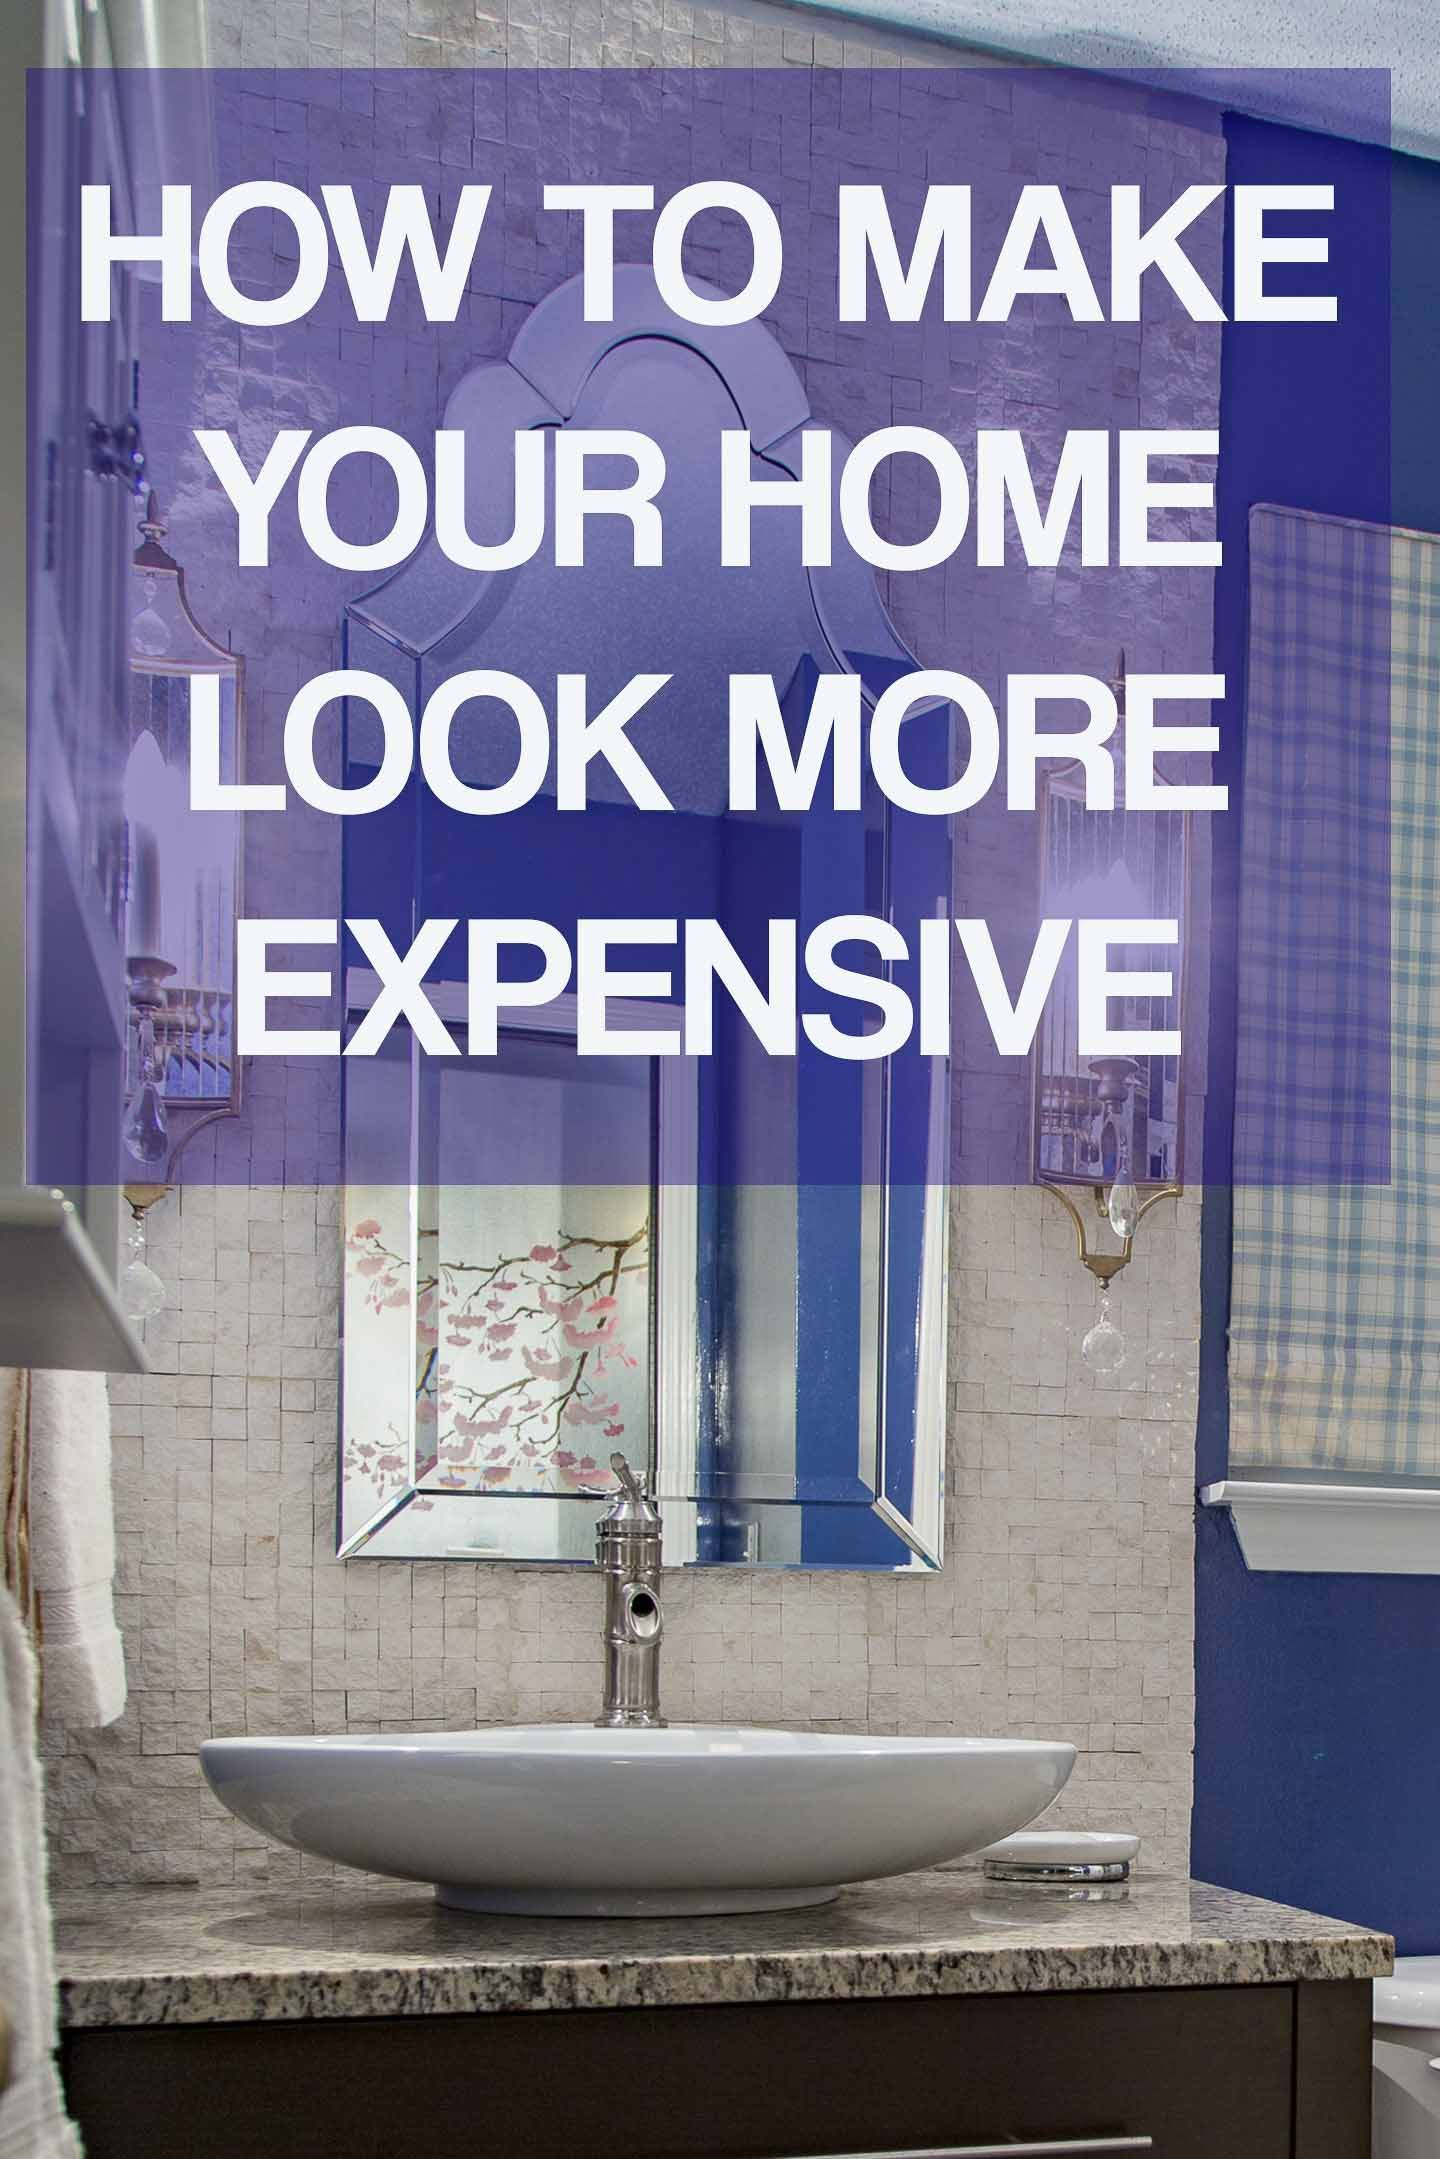 Advice From An Architect 10 Tips To Create A Cooler Home: 10 Easy Ways To Make Your House Look More Expensive (With Images)